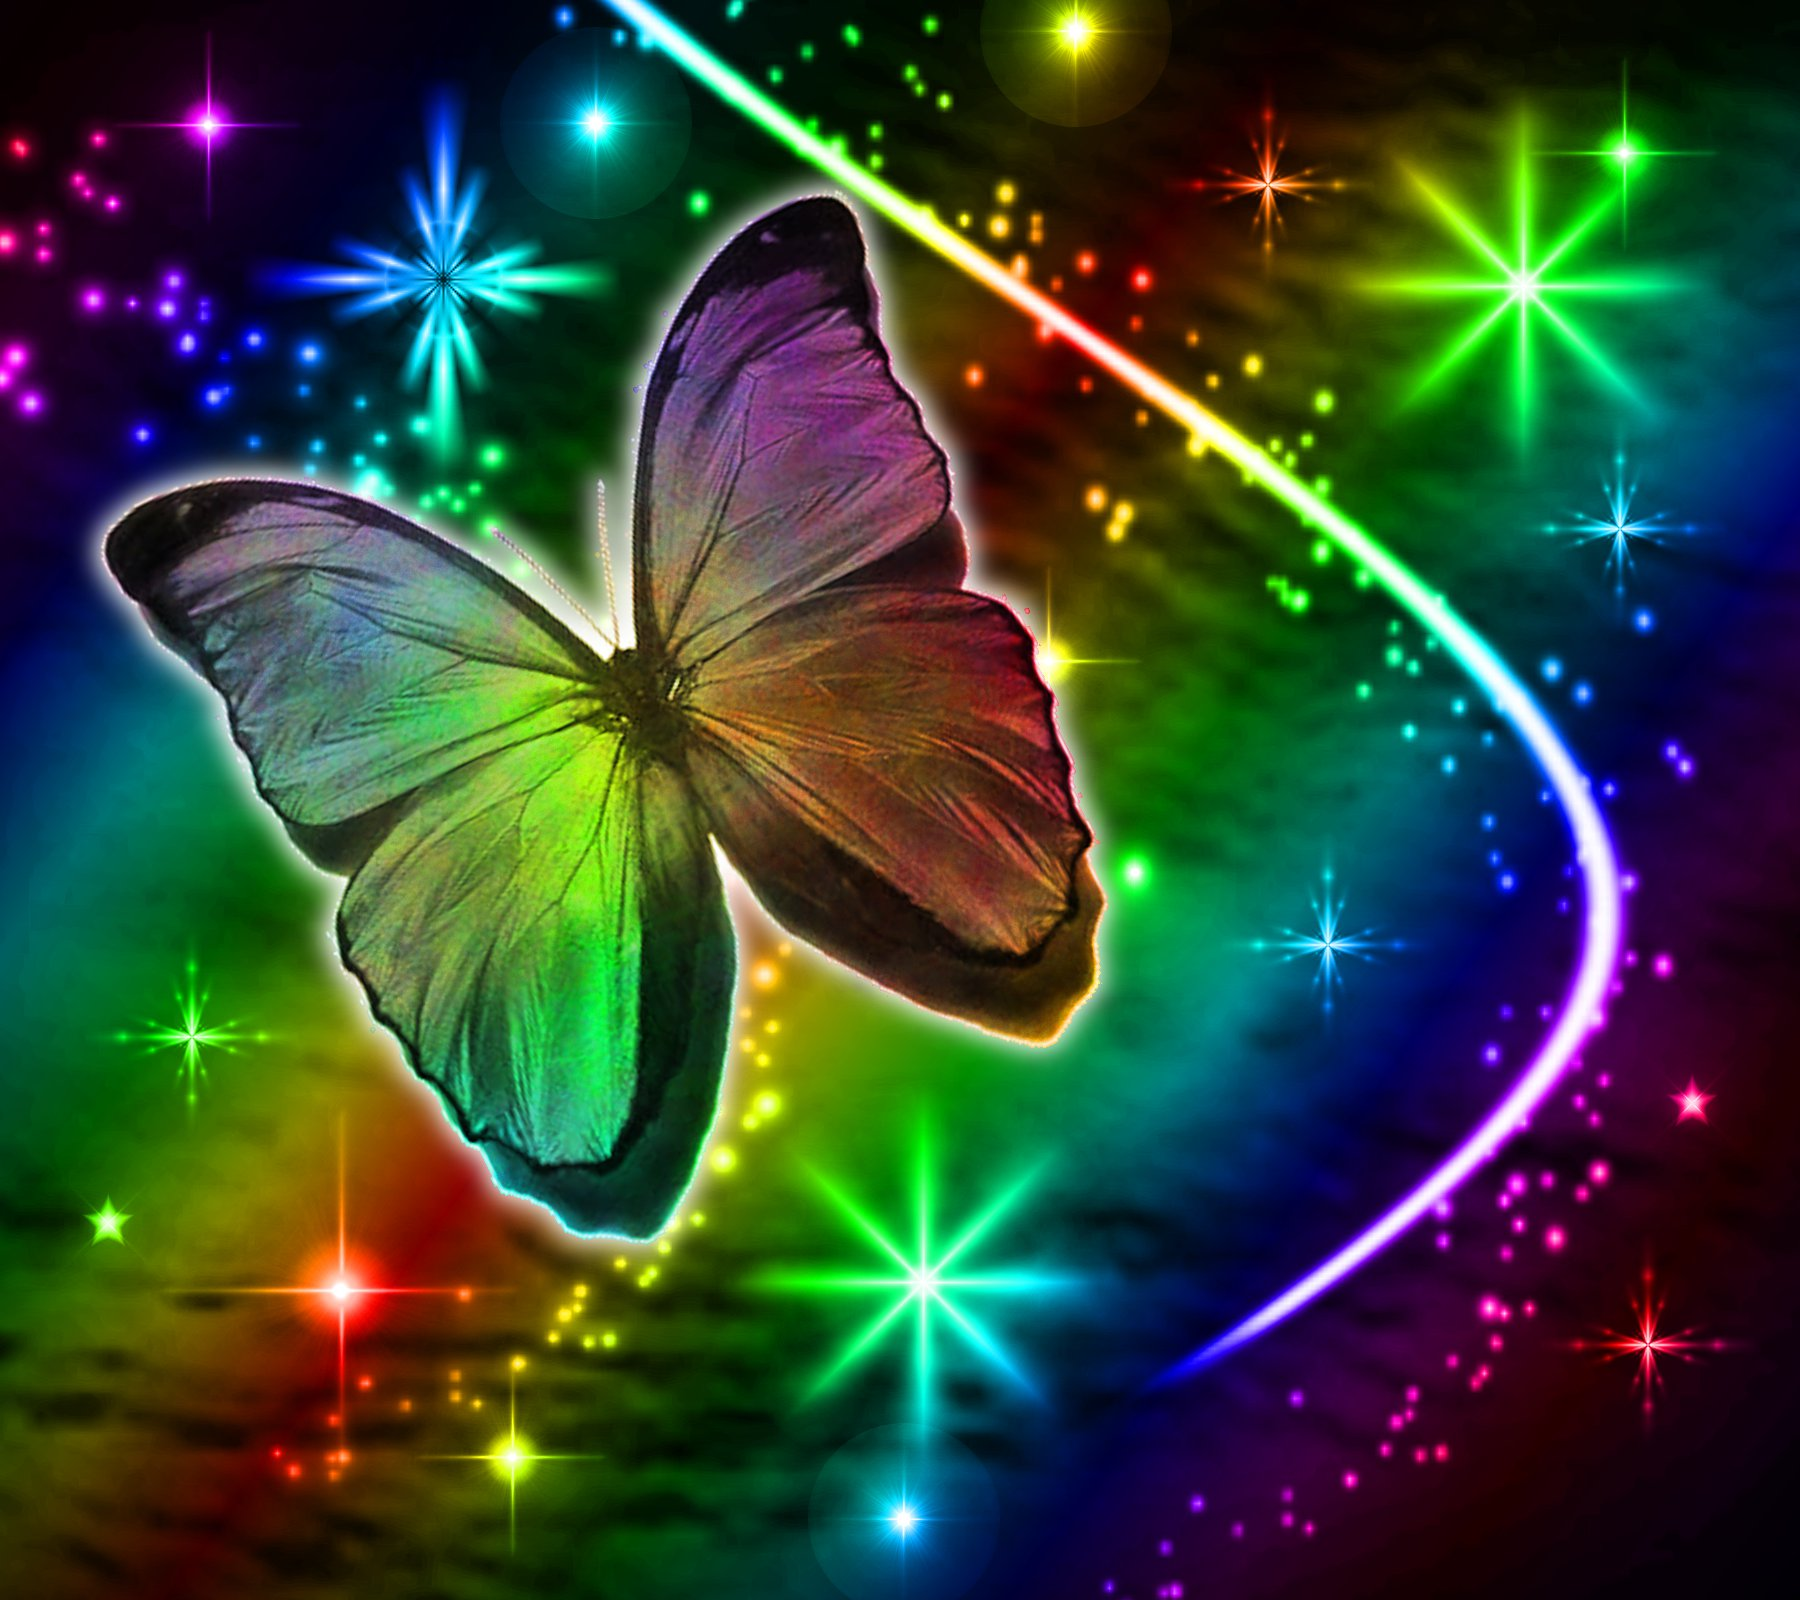 Background Wallpaper Image Rainbow Butterfly With Stars Background 1800x1600